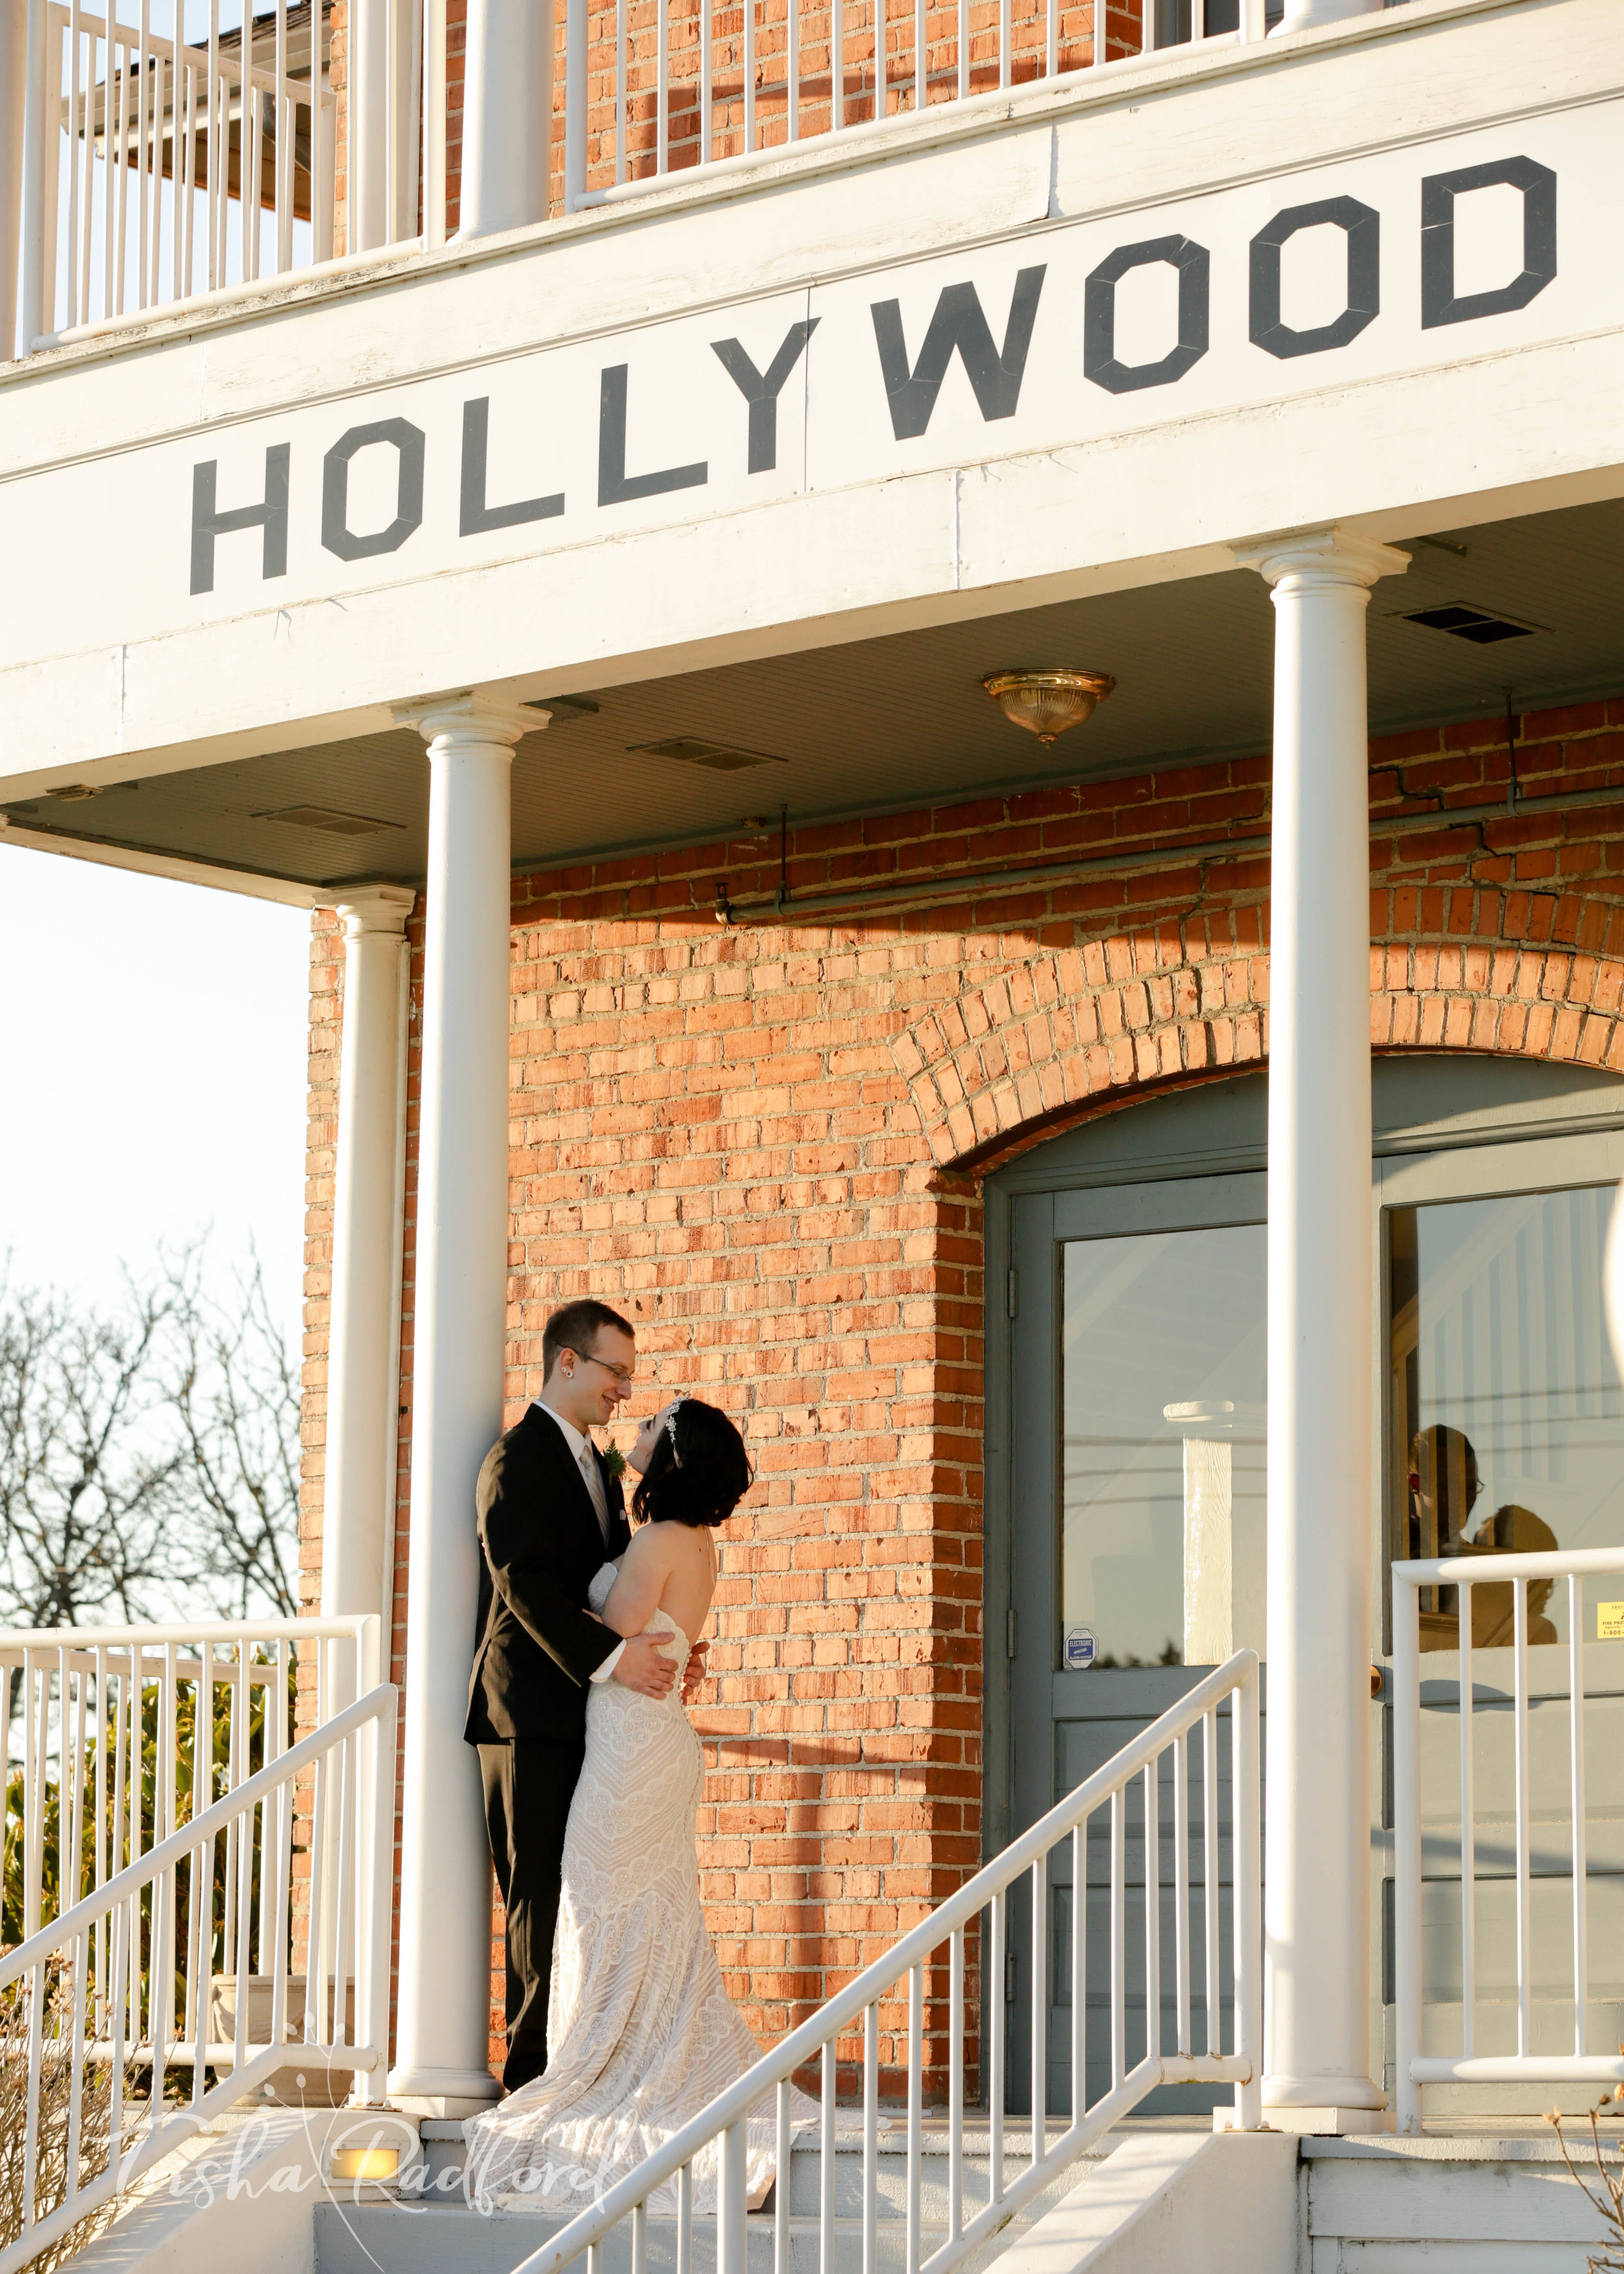 Wedding portrait photography at Hollywood Schoolhouse, Woodinville WA